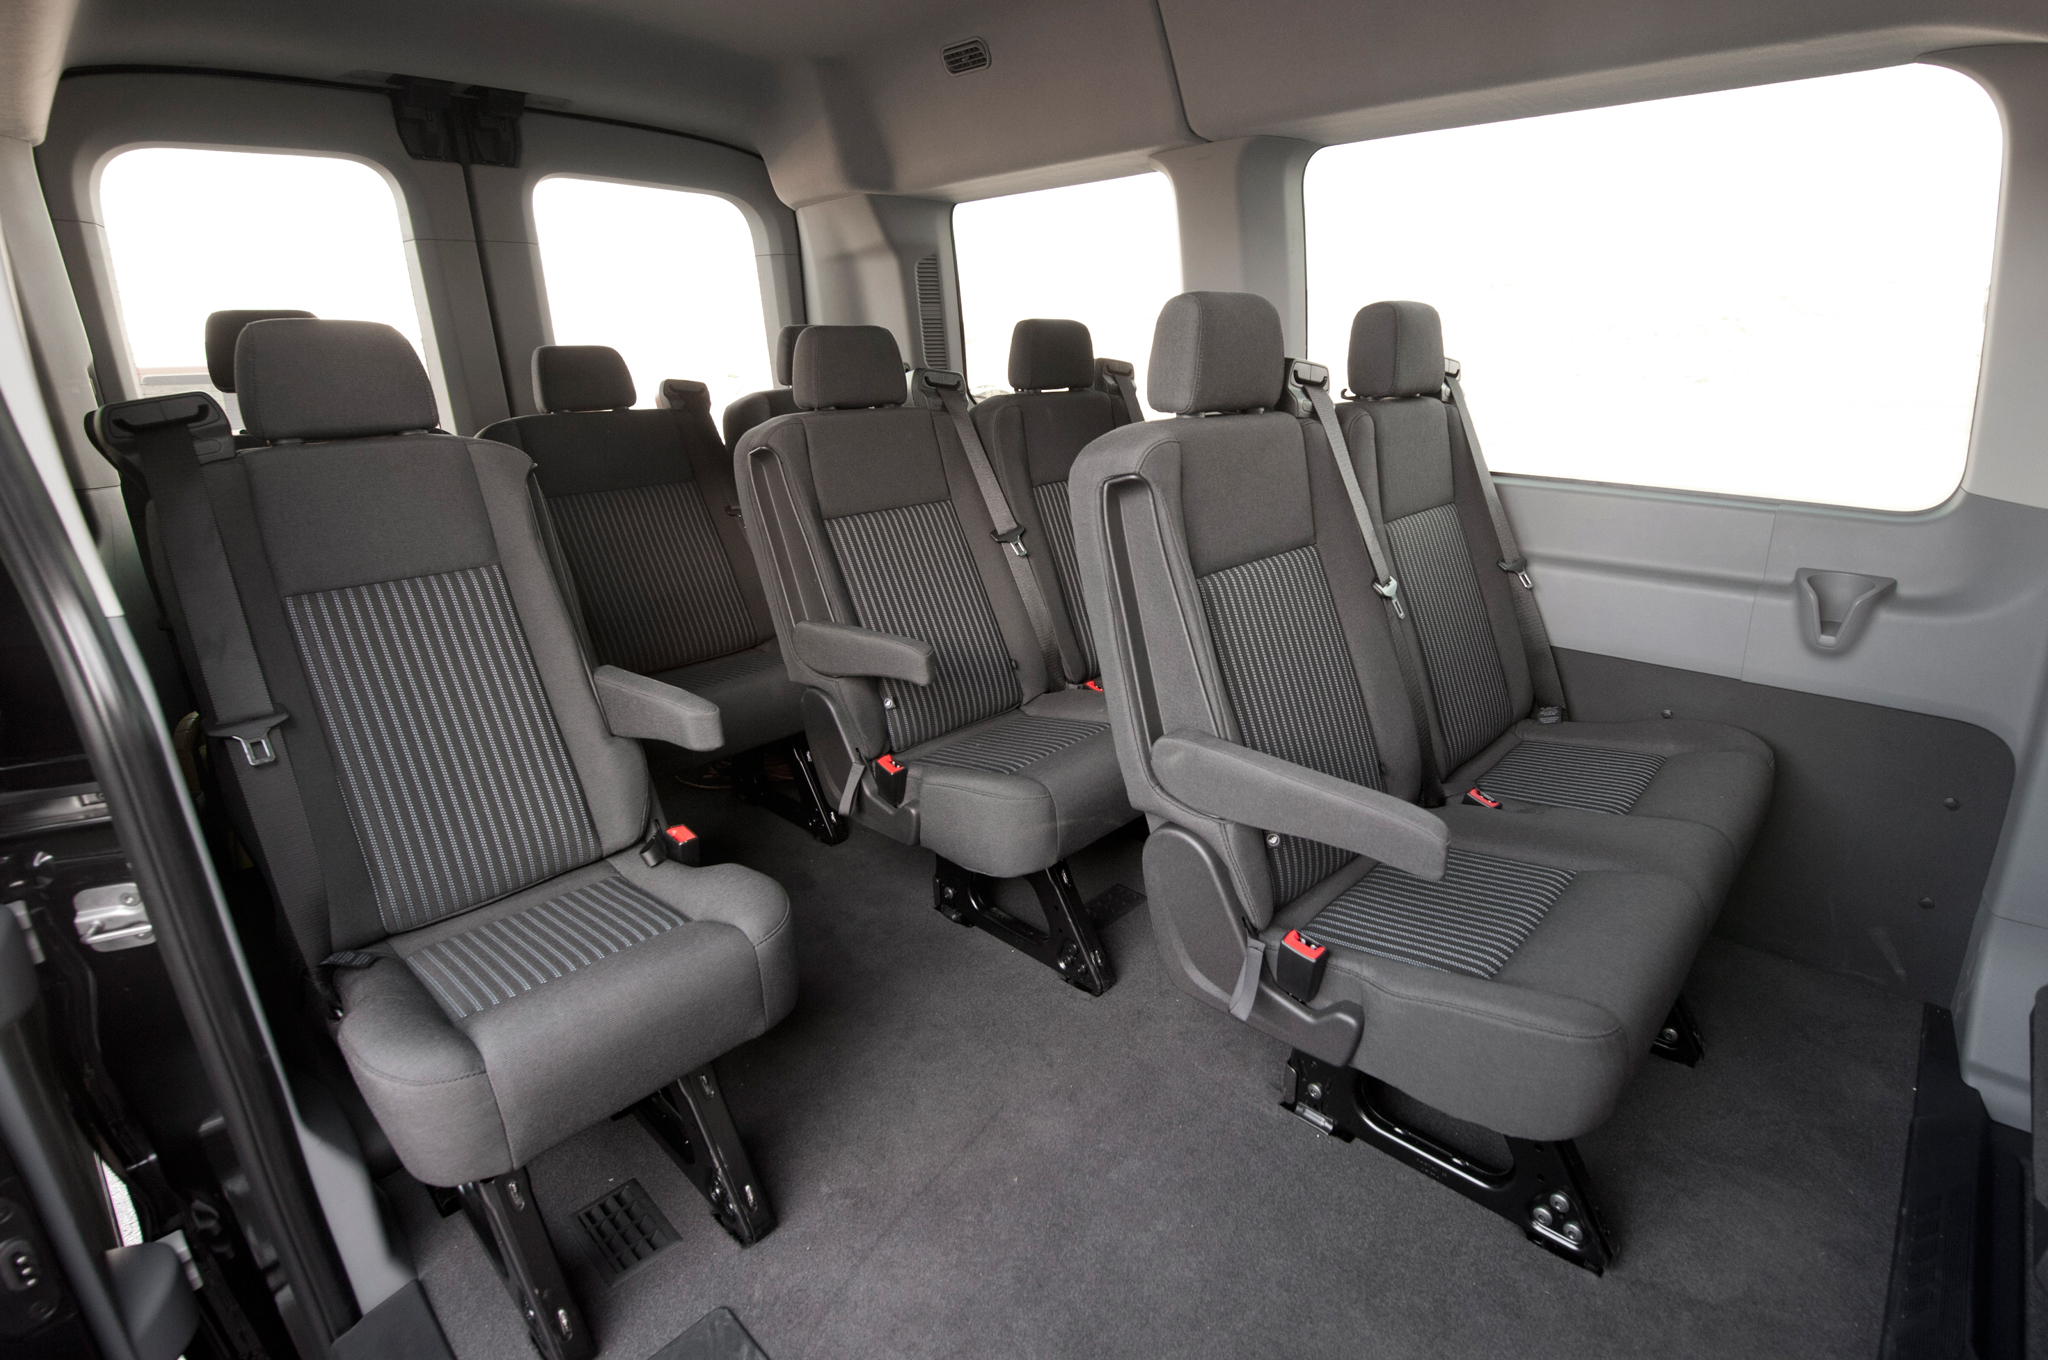 2015 Ford Transit 150 Seats Interior (Photo 12 of 13)